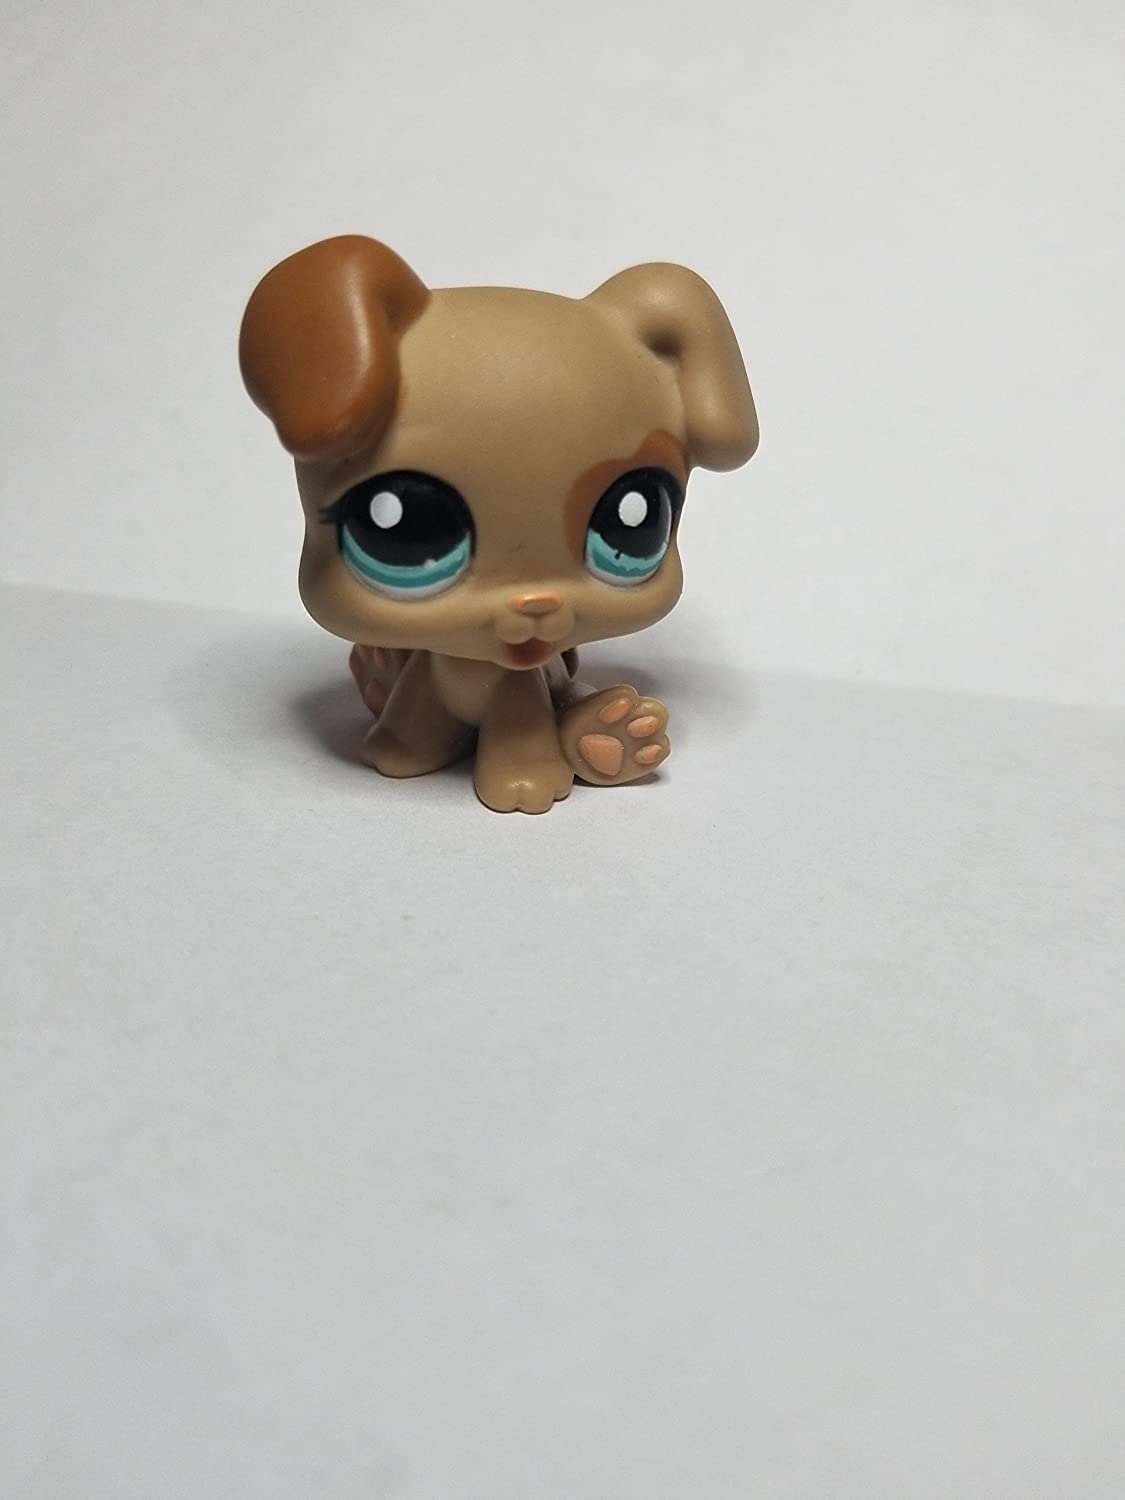 Puppy #1353 OOP Out of Package /& Print LPS Collectible Replacement Single Figure Collector Toy Retired Brown, Green Eyes Littlest Pet Shop Loose